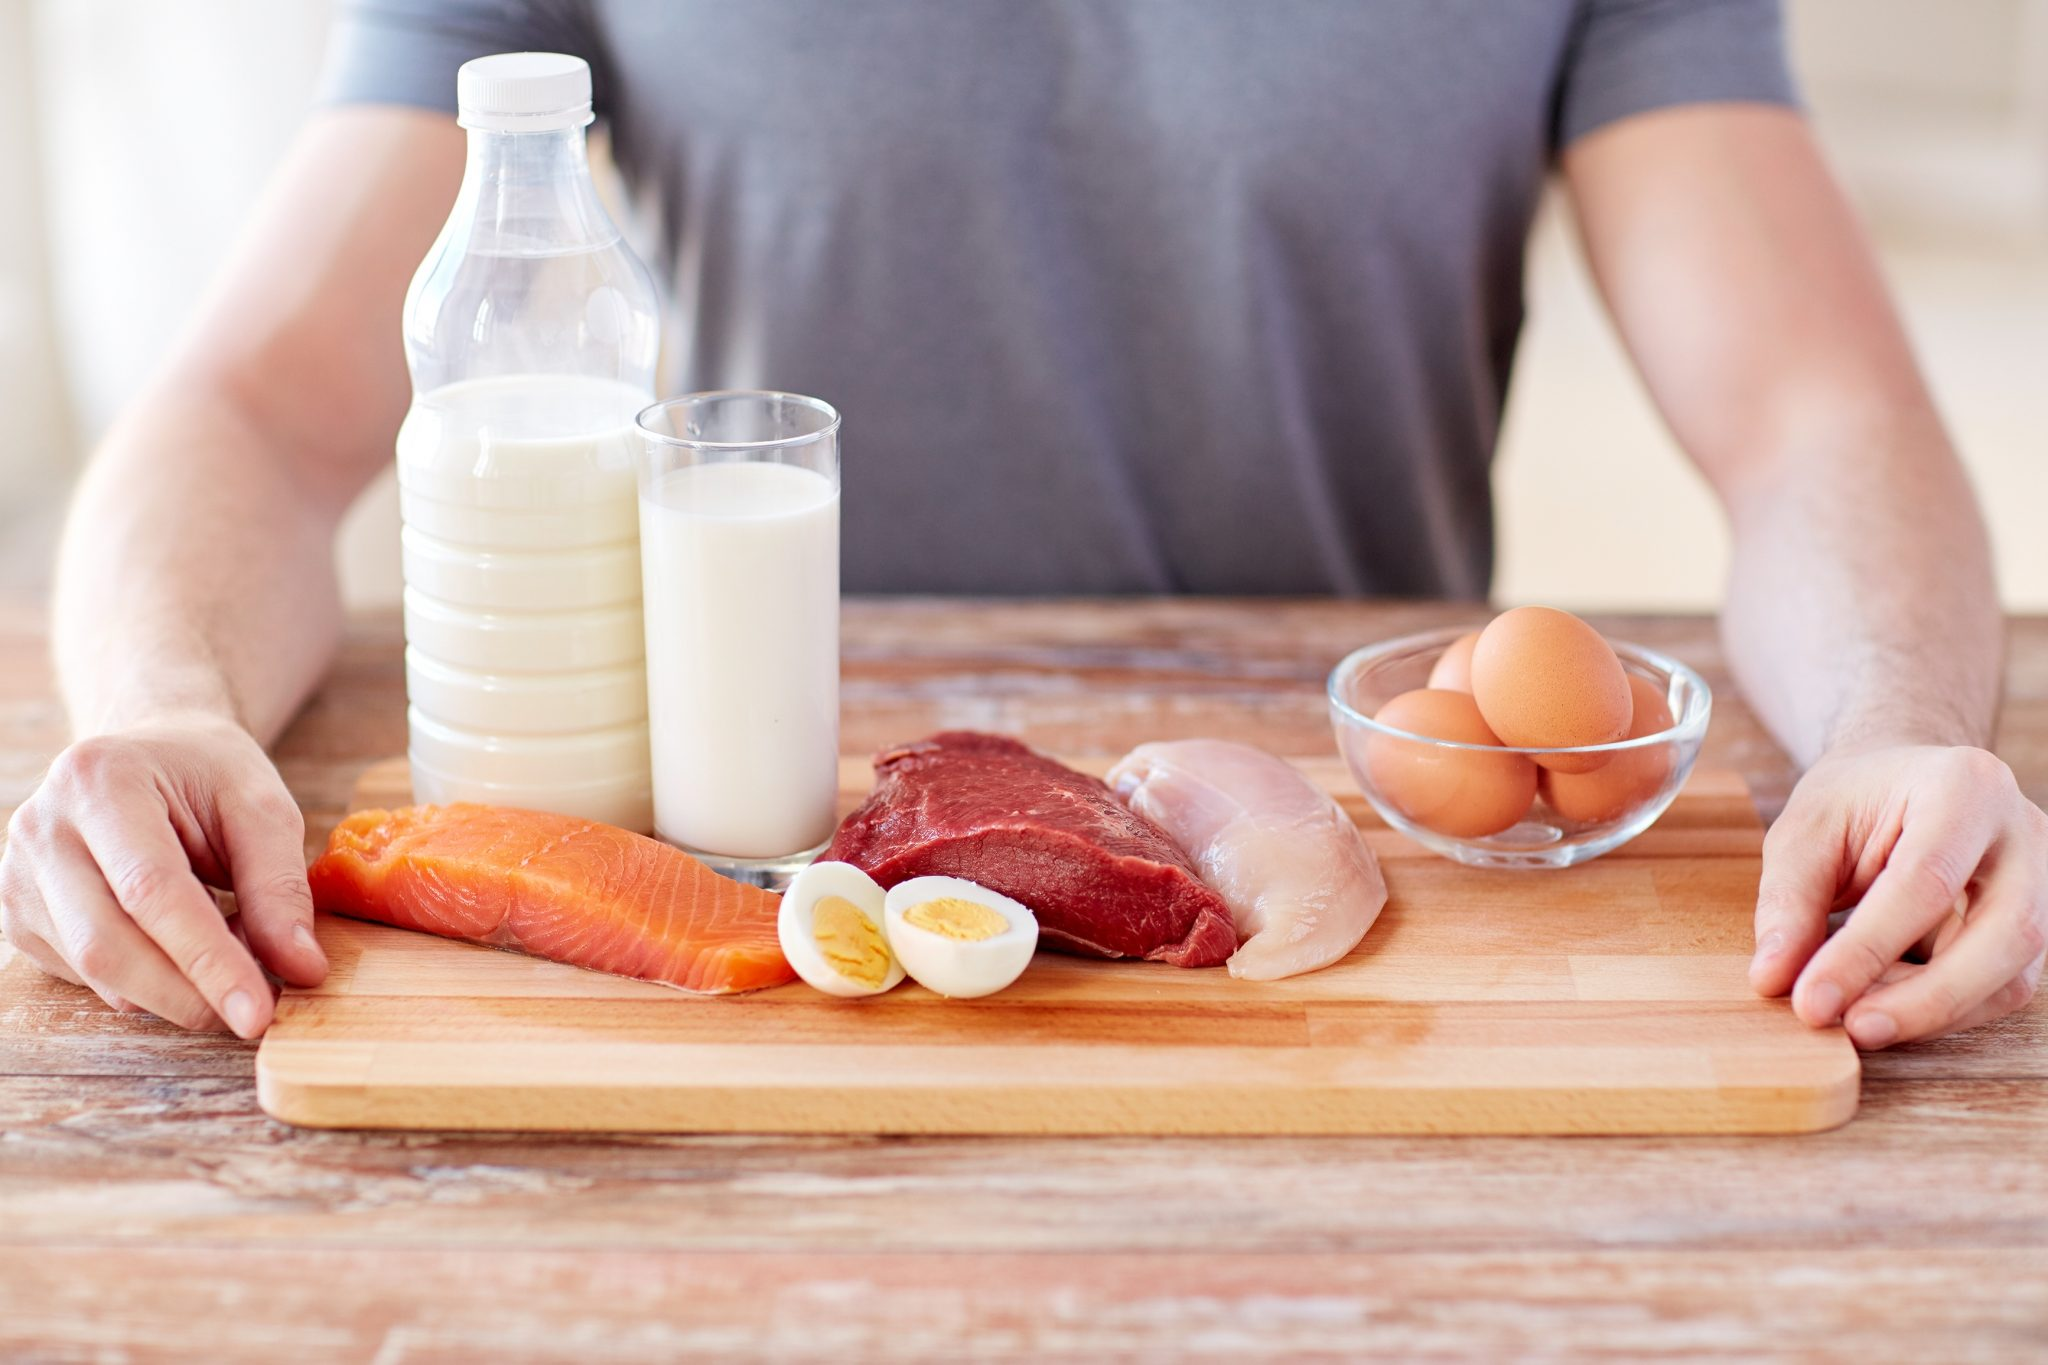 Tuna, egg yolks, beef, spinach, and fortified cereals are just a few testosterone-boosting foods ideal for combating low T.